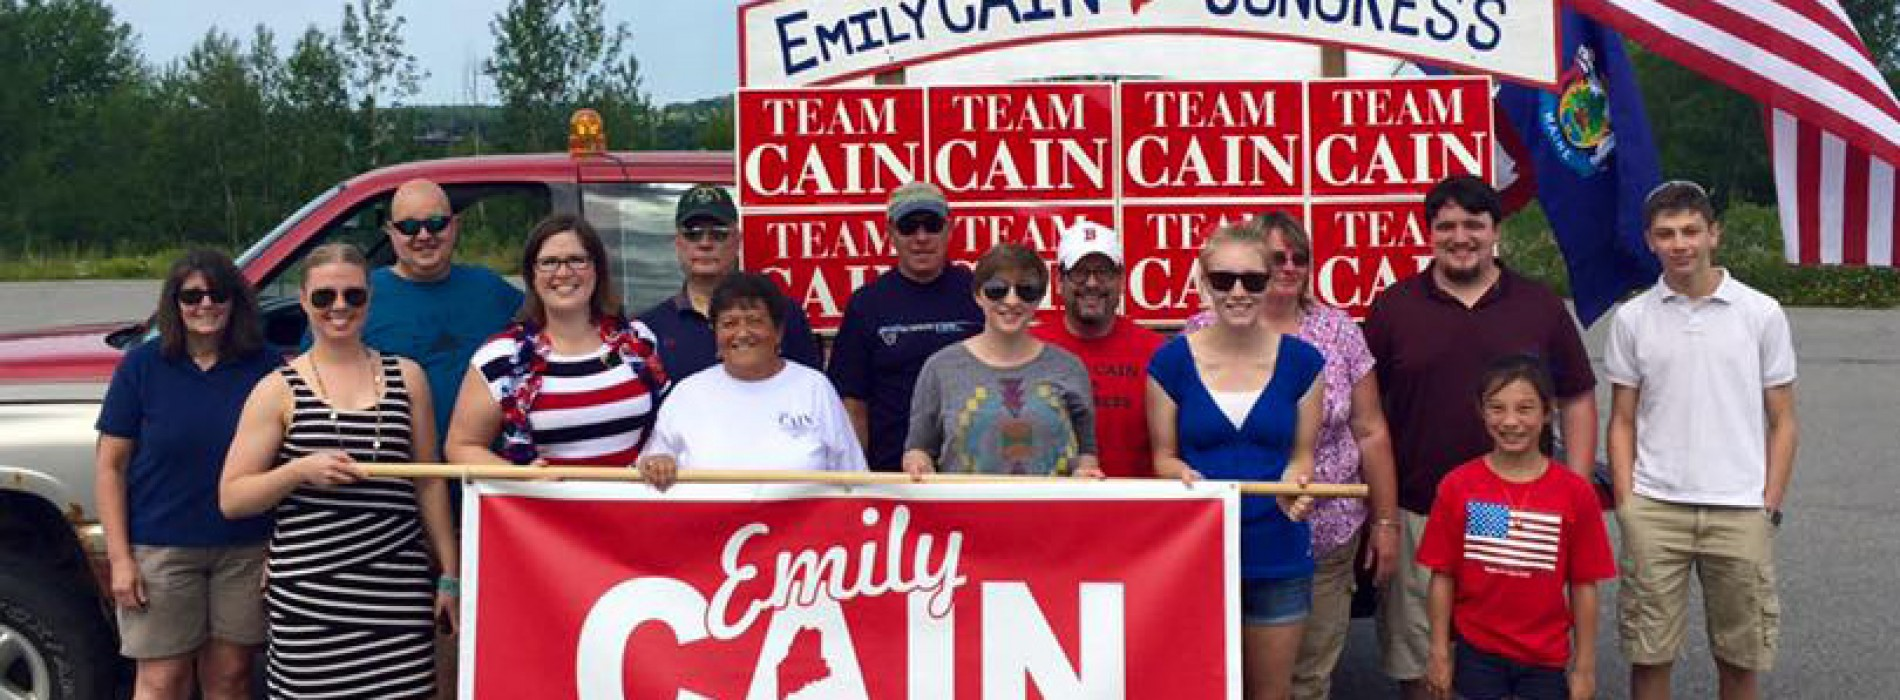 Emily Cain on the issues